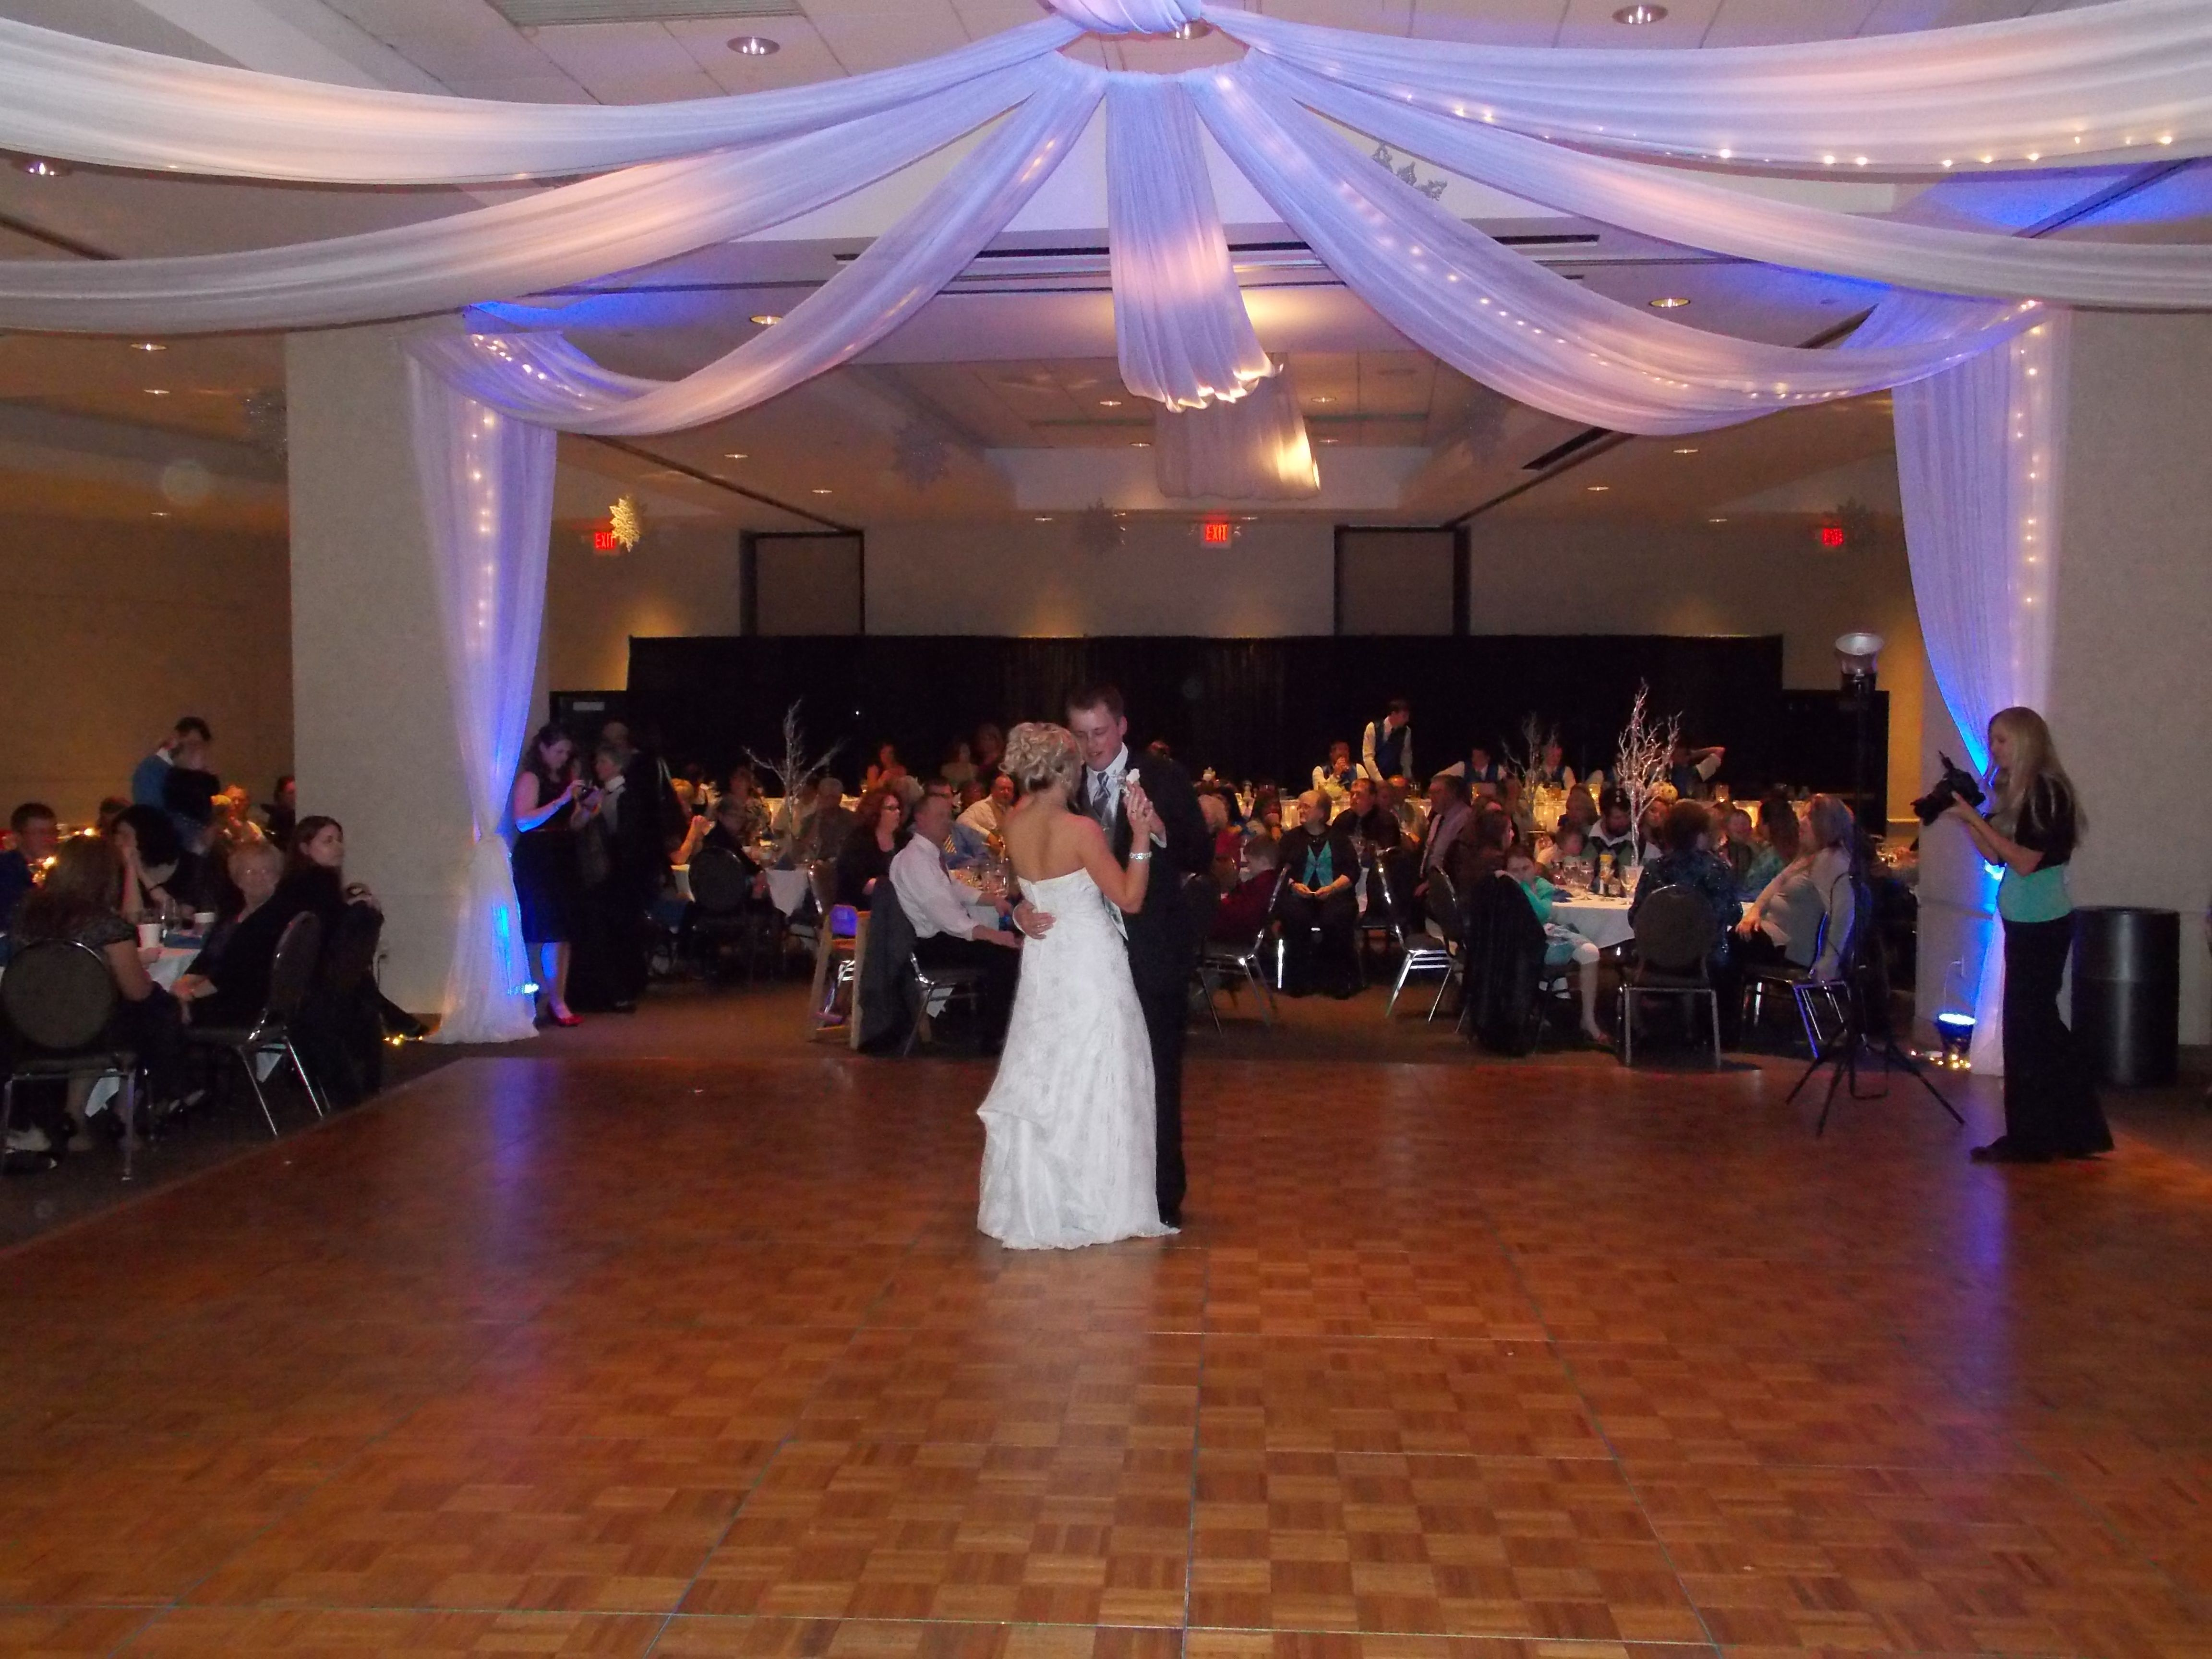 The bride and groom's first dance, at the i wireless